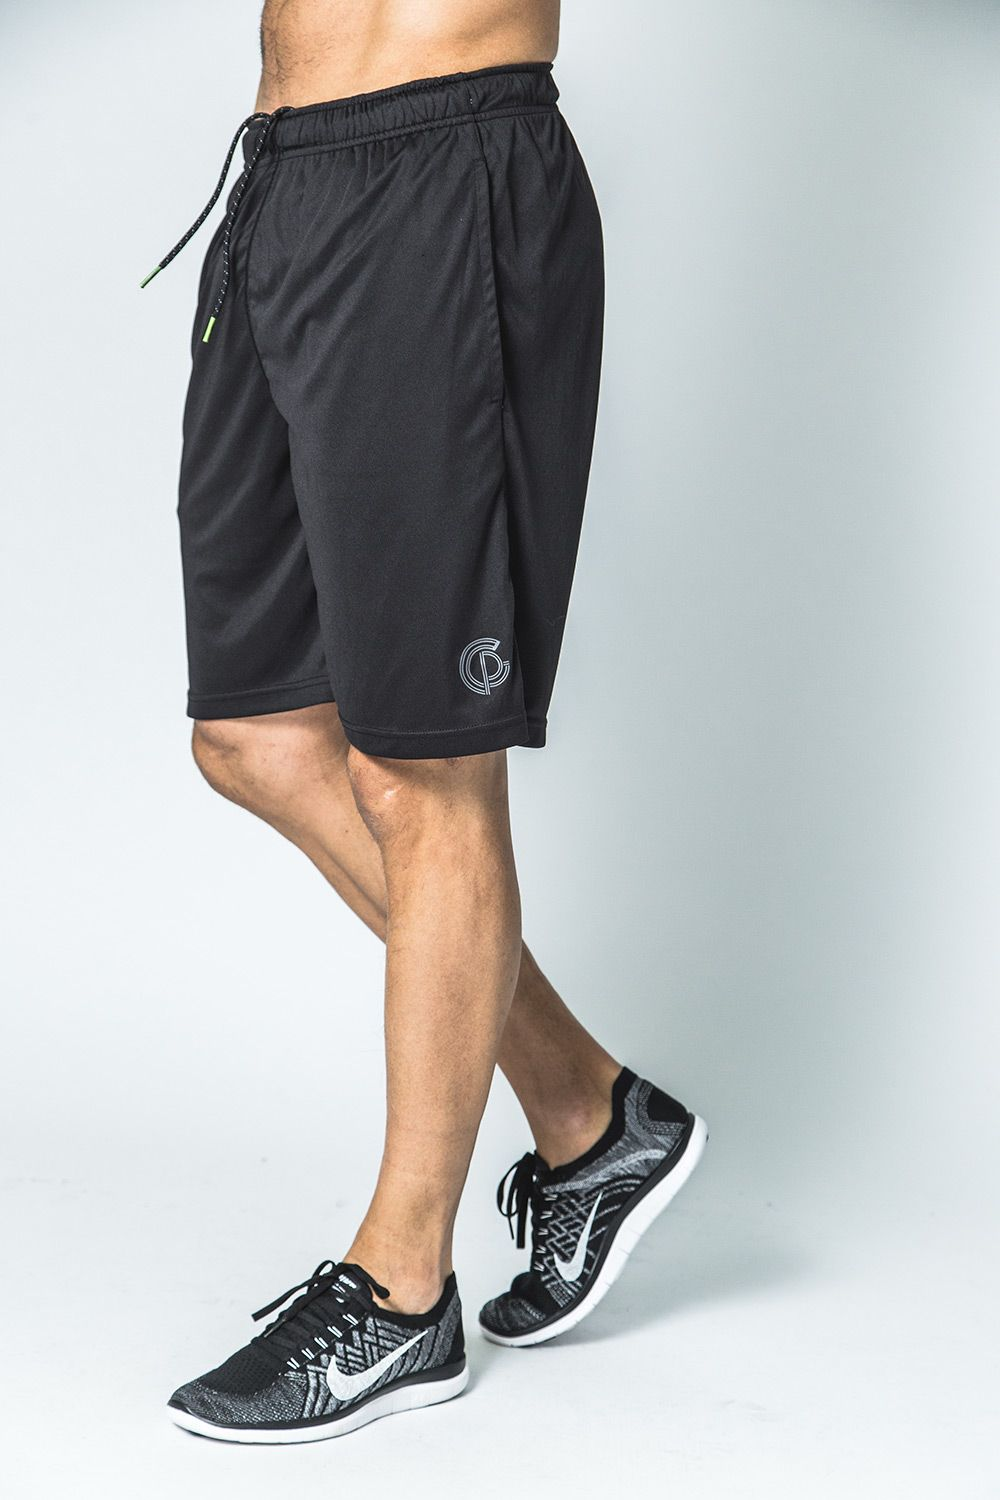 GymPro active training shorts with their lightweight fabric provide unlimited range of movement, providing a sense of freedom to your workouts.